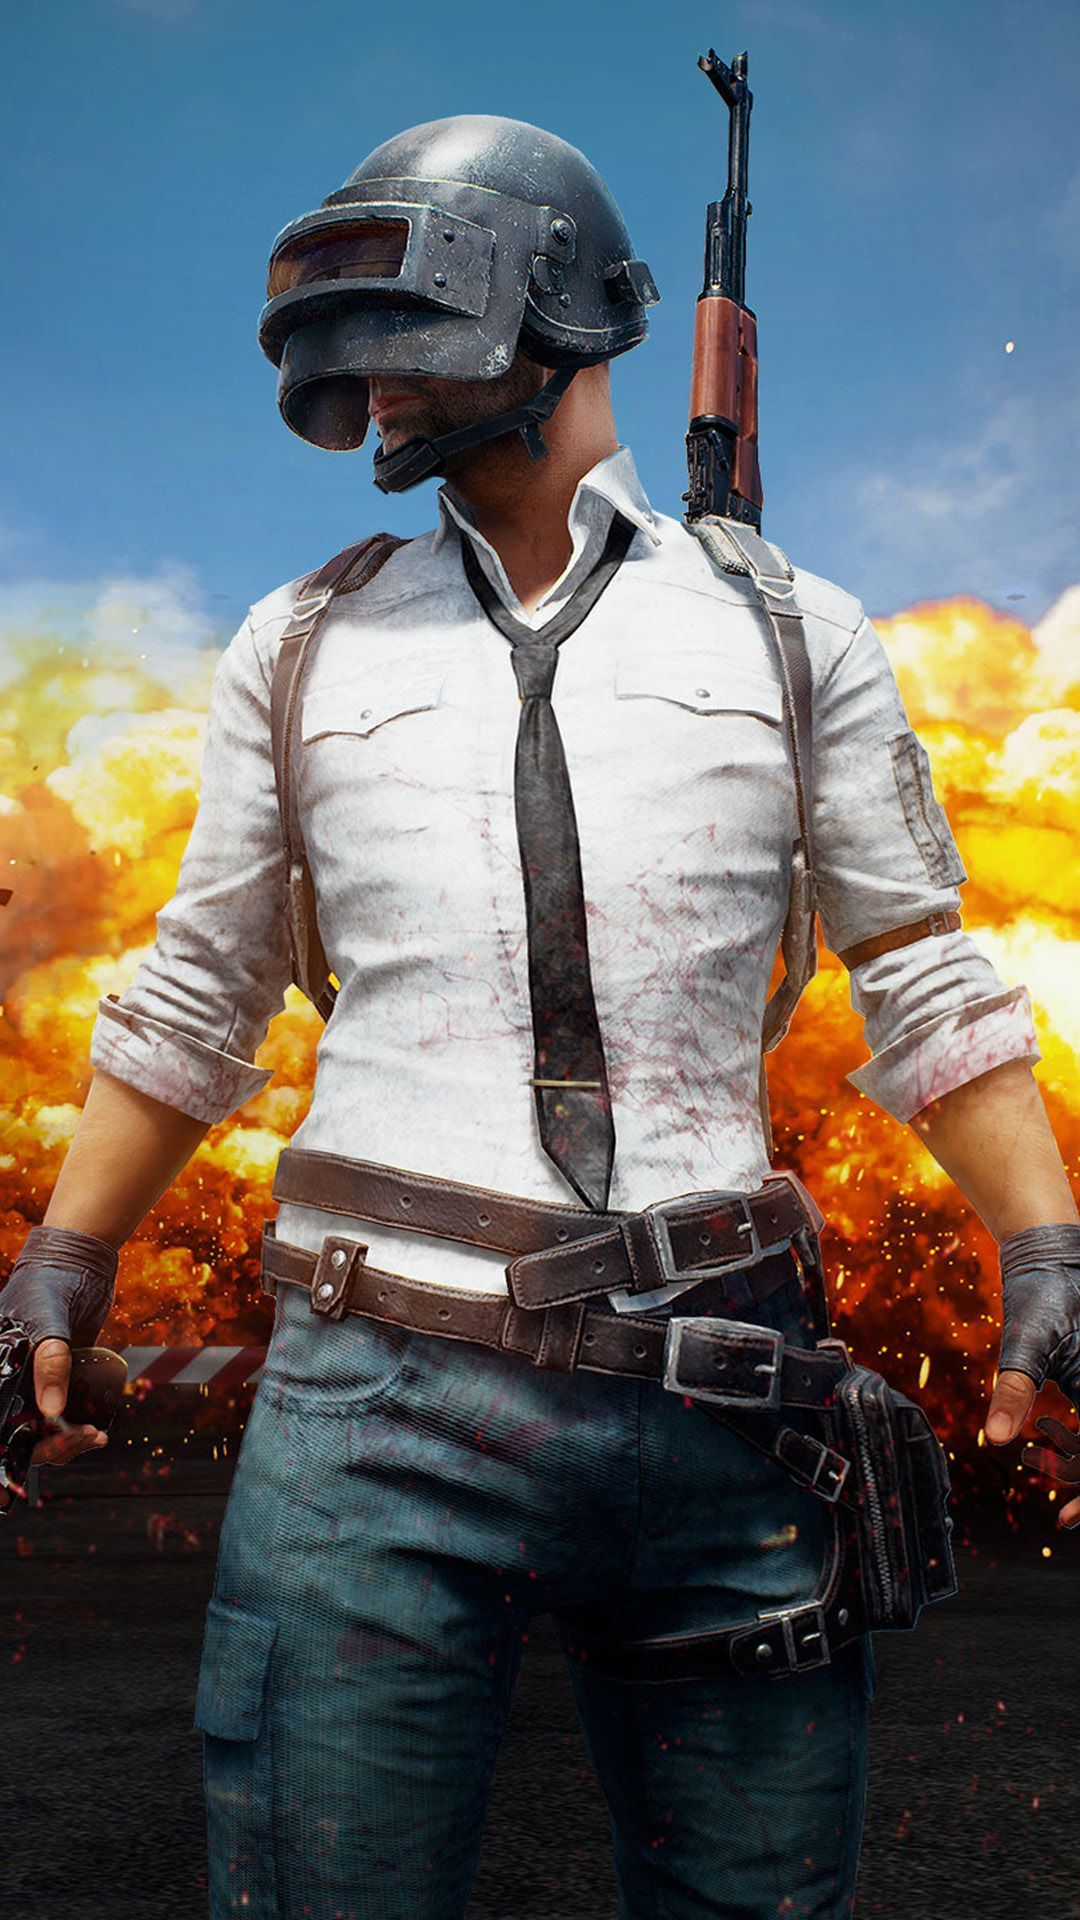 Player Unknown's Battlegrounds (PUBG) 4K Pubg wallpaper